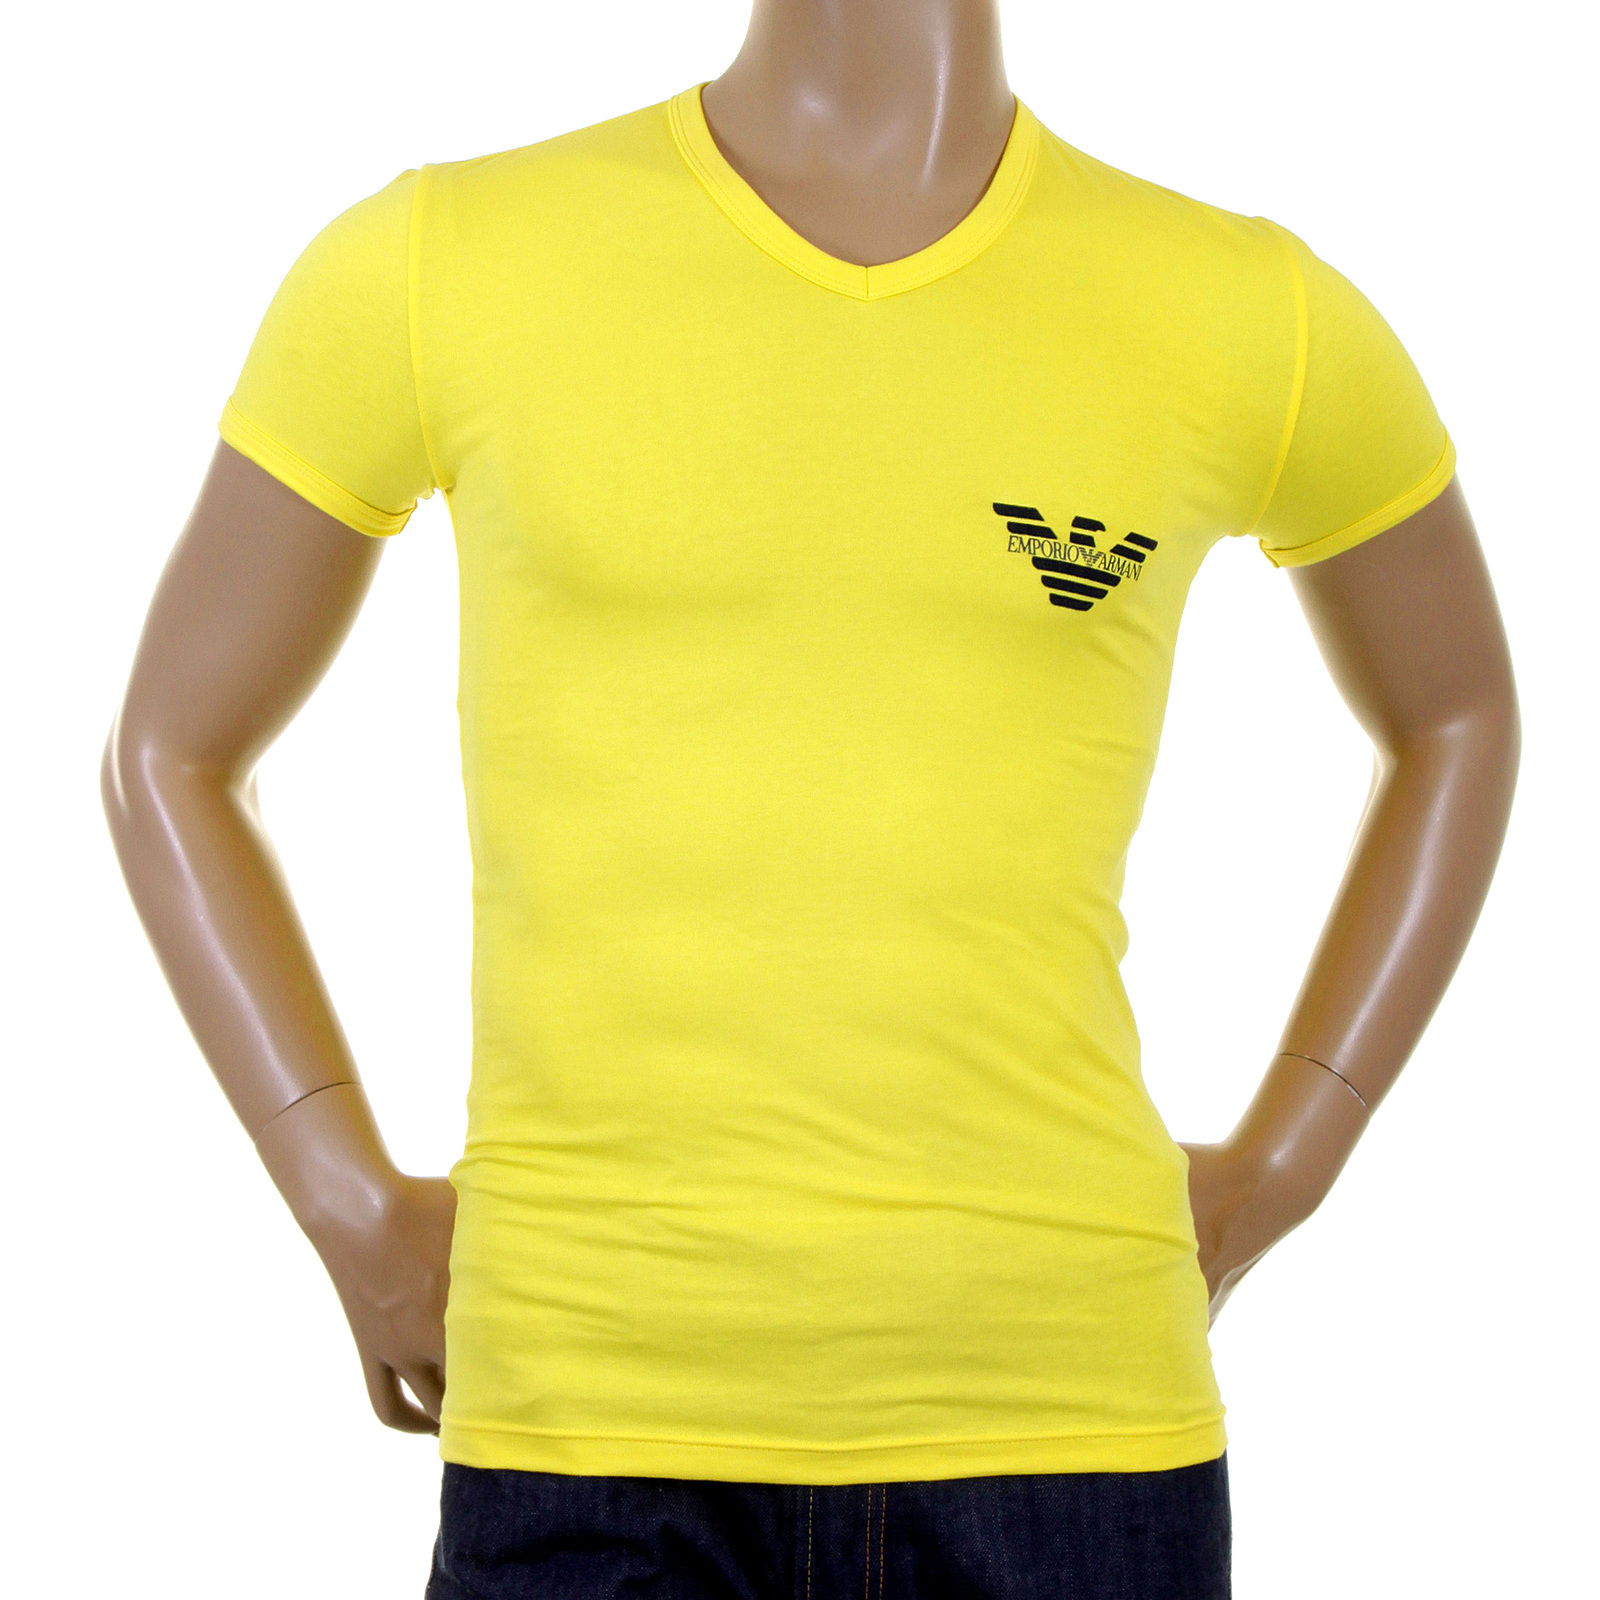 emporio armani t shirts lemon v neck t shirt 111221 1w515 eam2384 at togged clothing. Black Bedroom Furniture Sets. Home Design Ideas